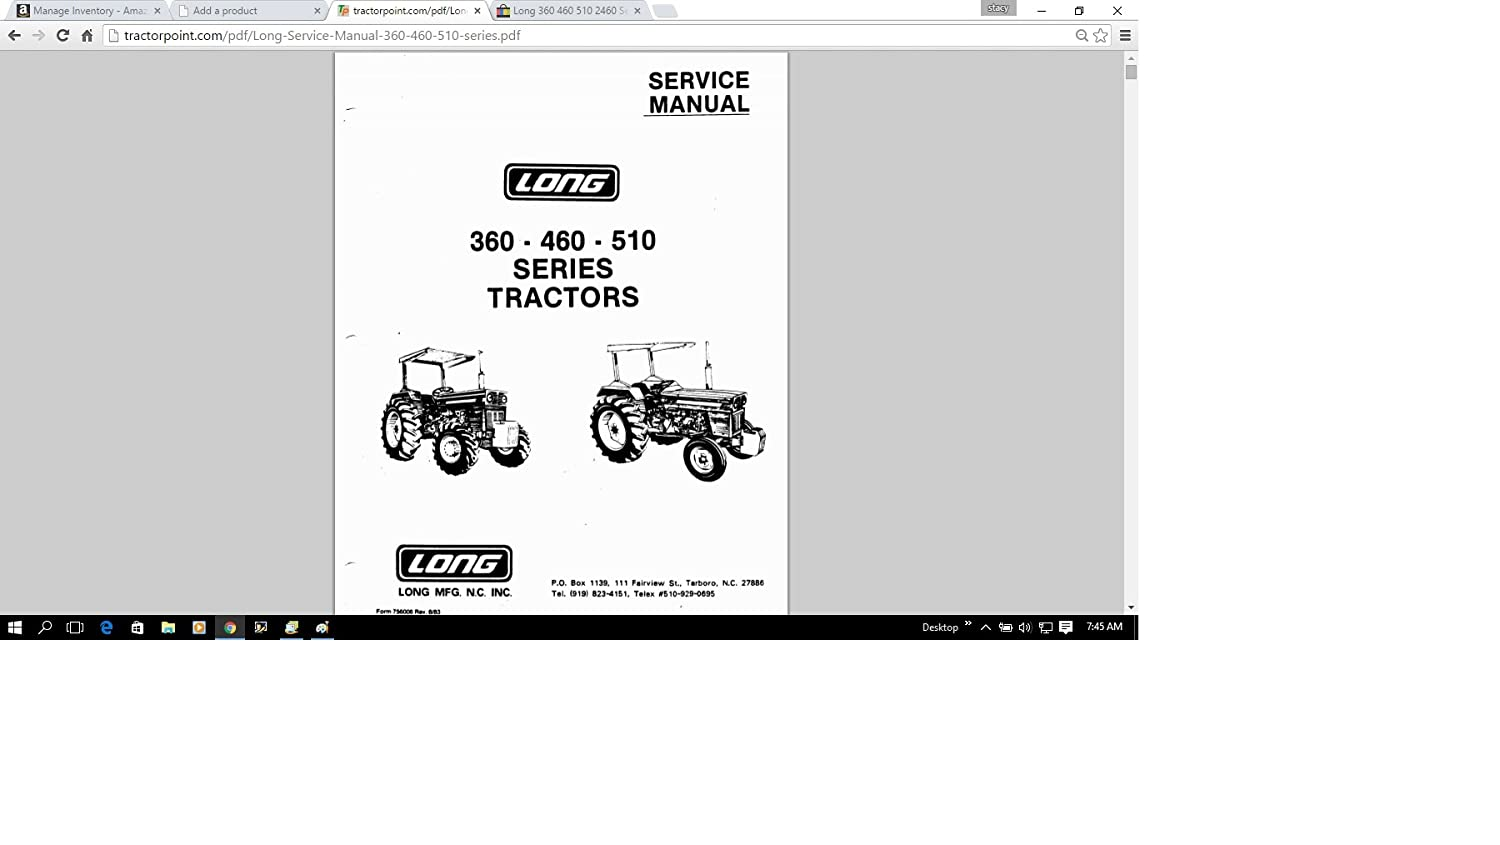 Amazon.com: Long 360 460 510 2460 Series Tractor Service Repair Maintenance  Manual: Everything Else